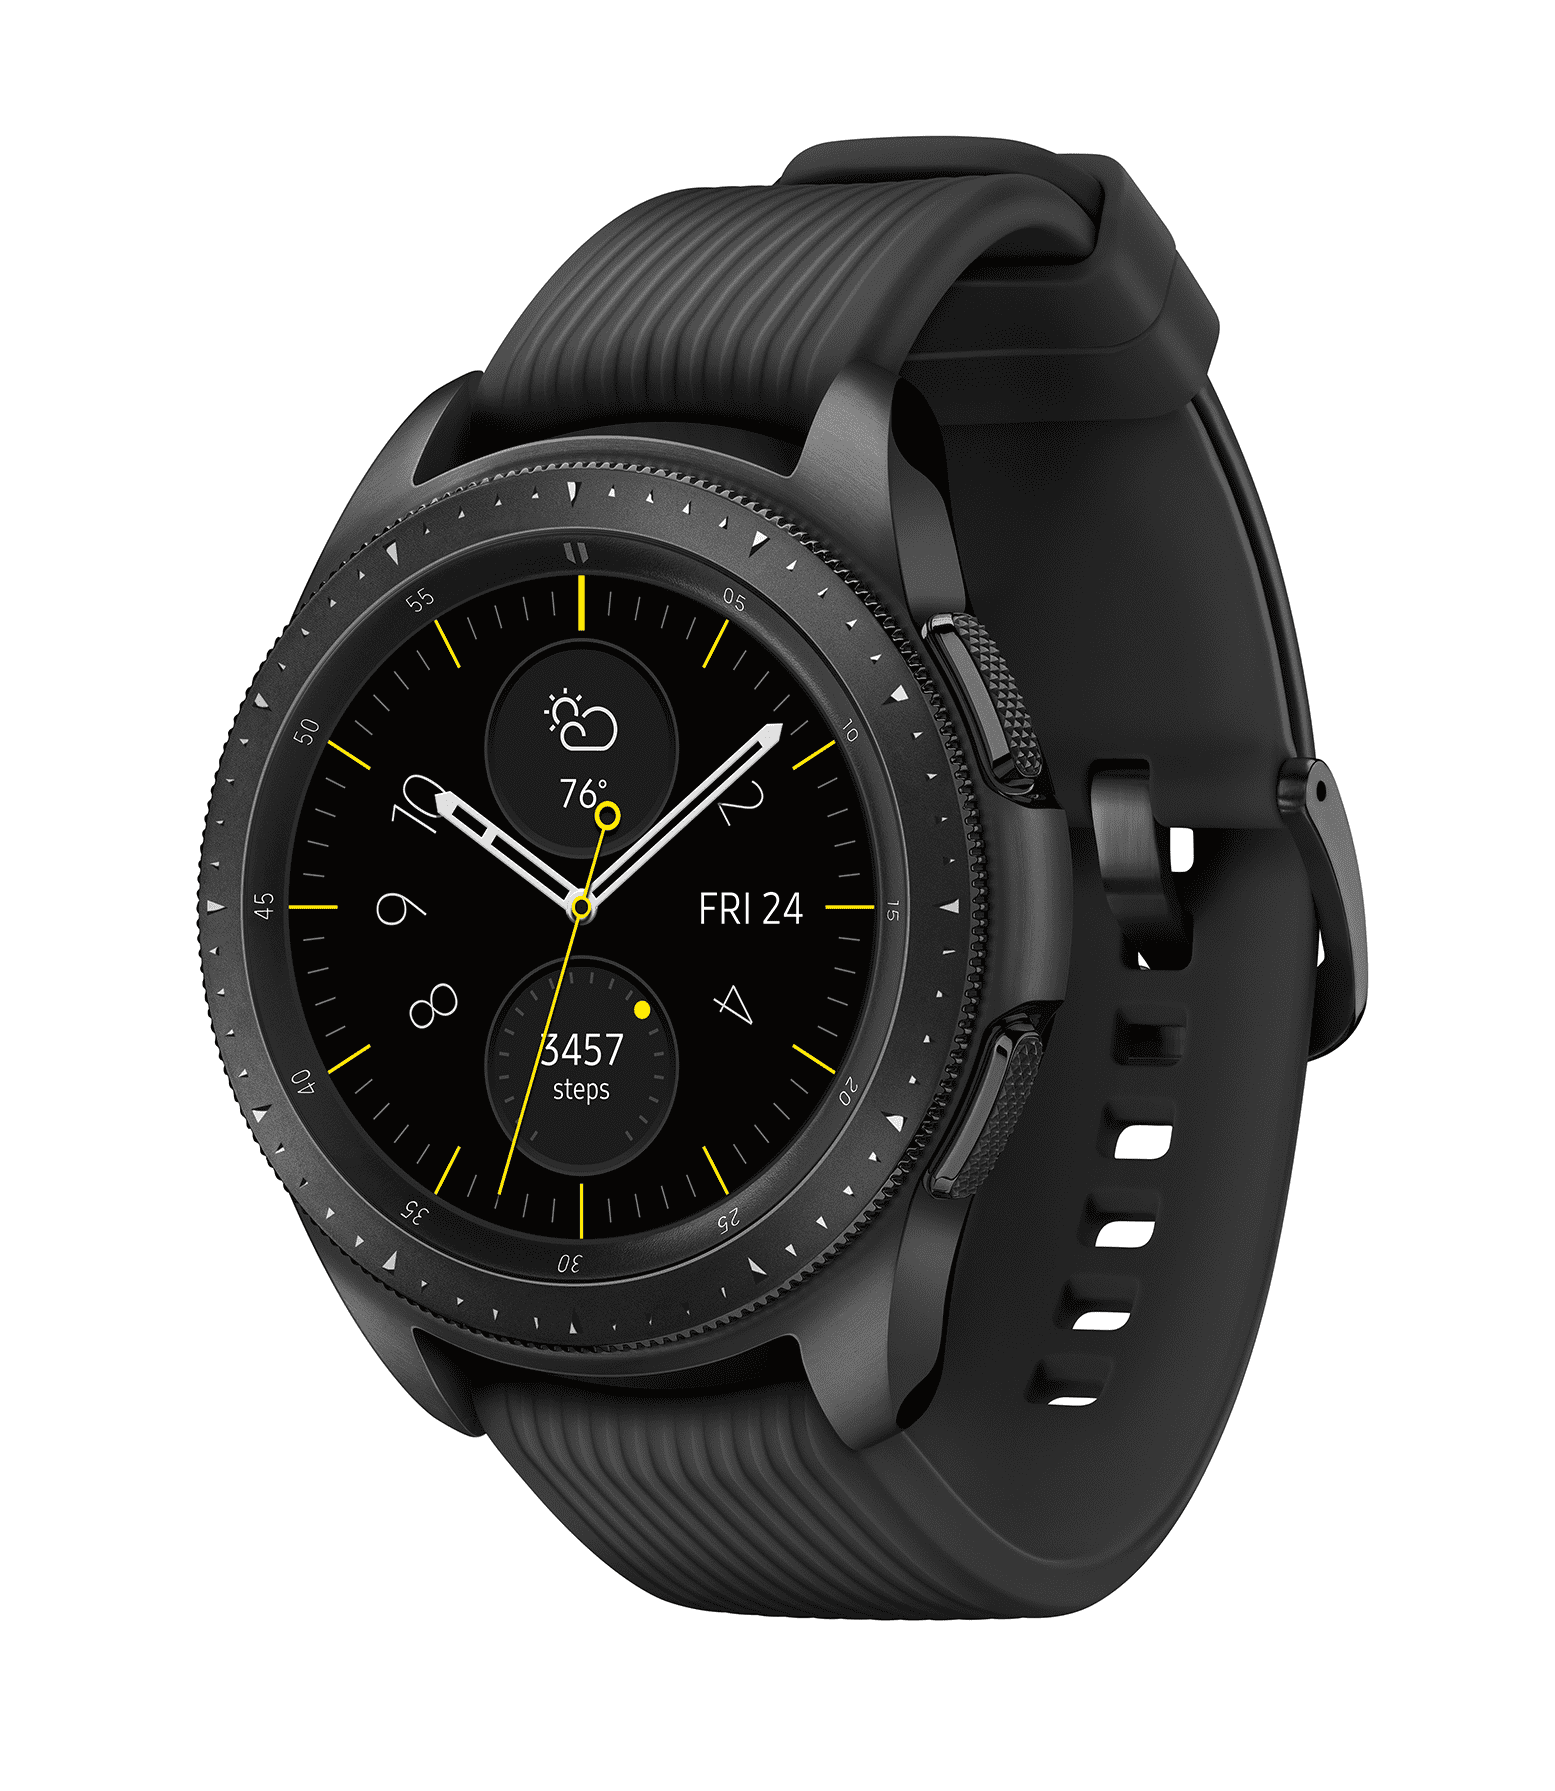 SAMSUNG Galaxy Watch - Bluetooth Smart Watch (42mm) - Midnight Black - SM-R810NZKAXAR